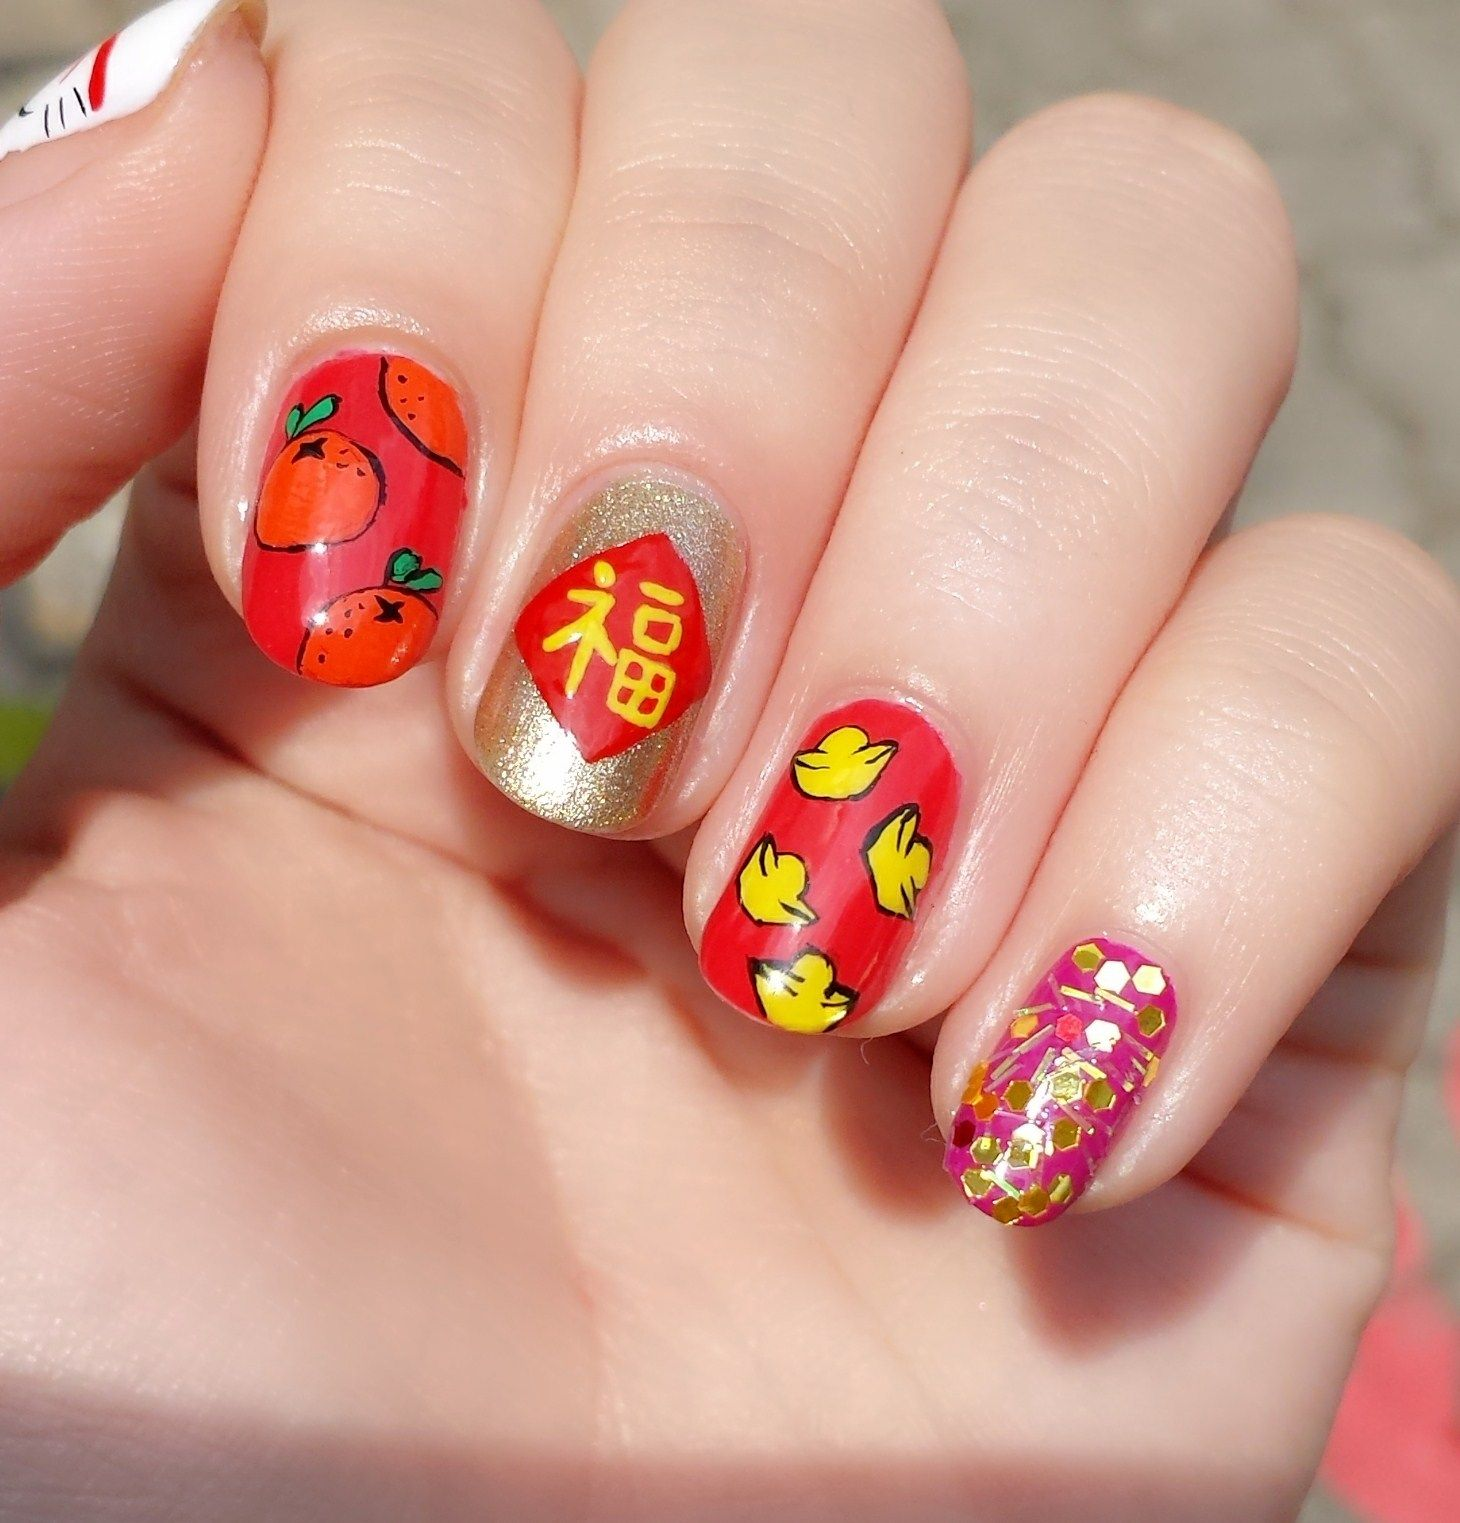 Chinese New Year fortune cat nails | Cat nails and Manicure